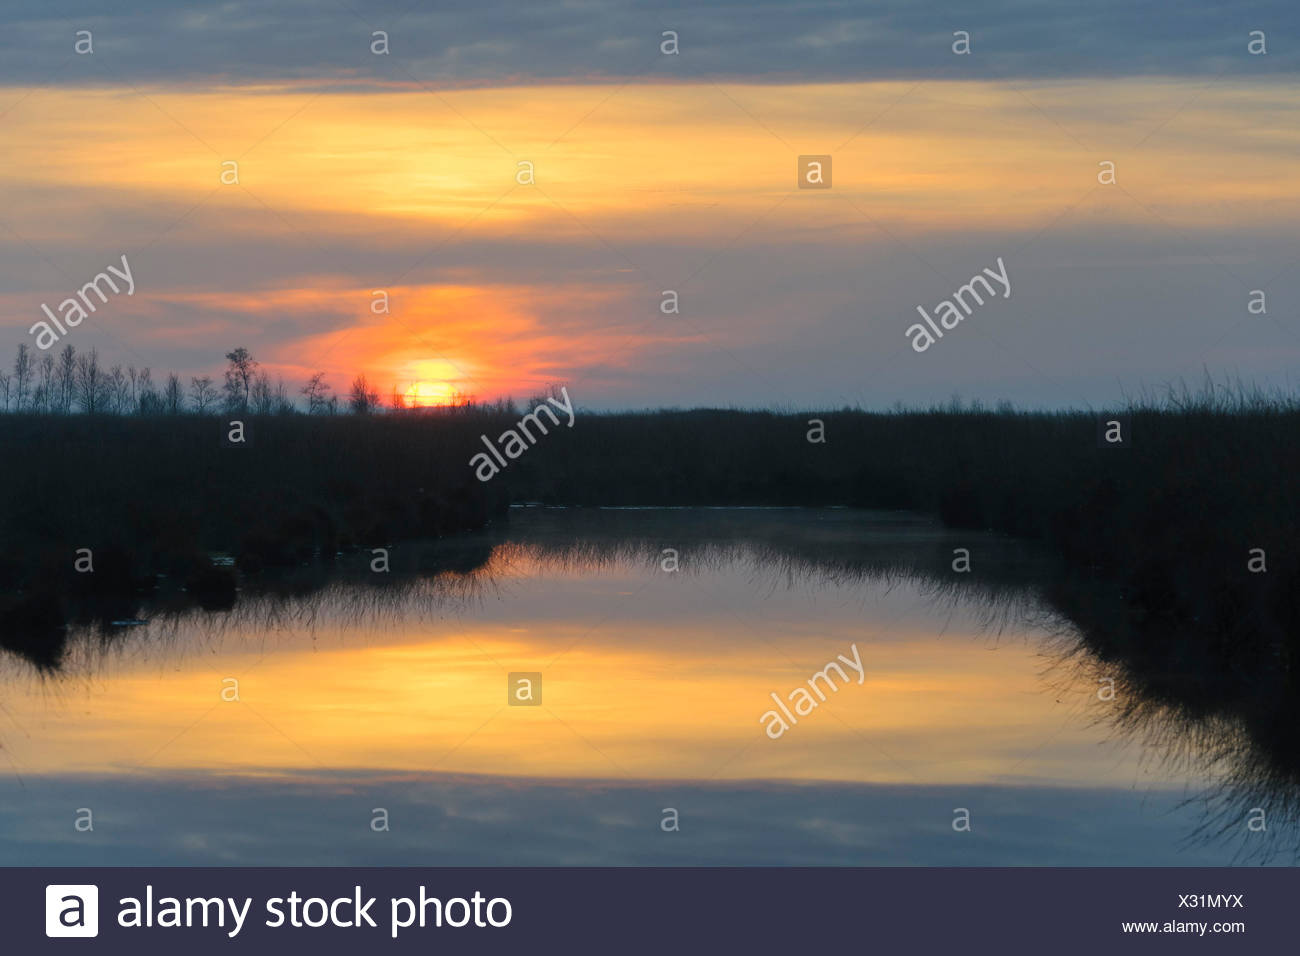 Goldenstedter Moor, Lower Saxony, Germany Stock Photo